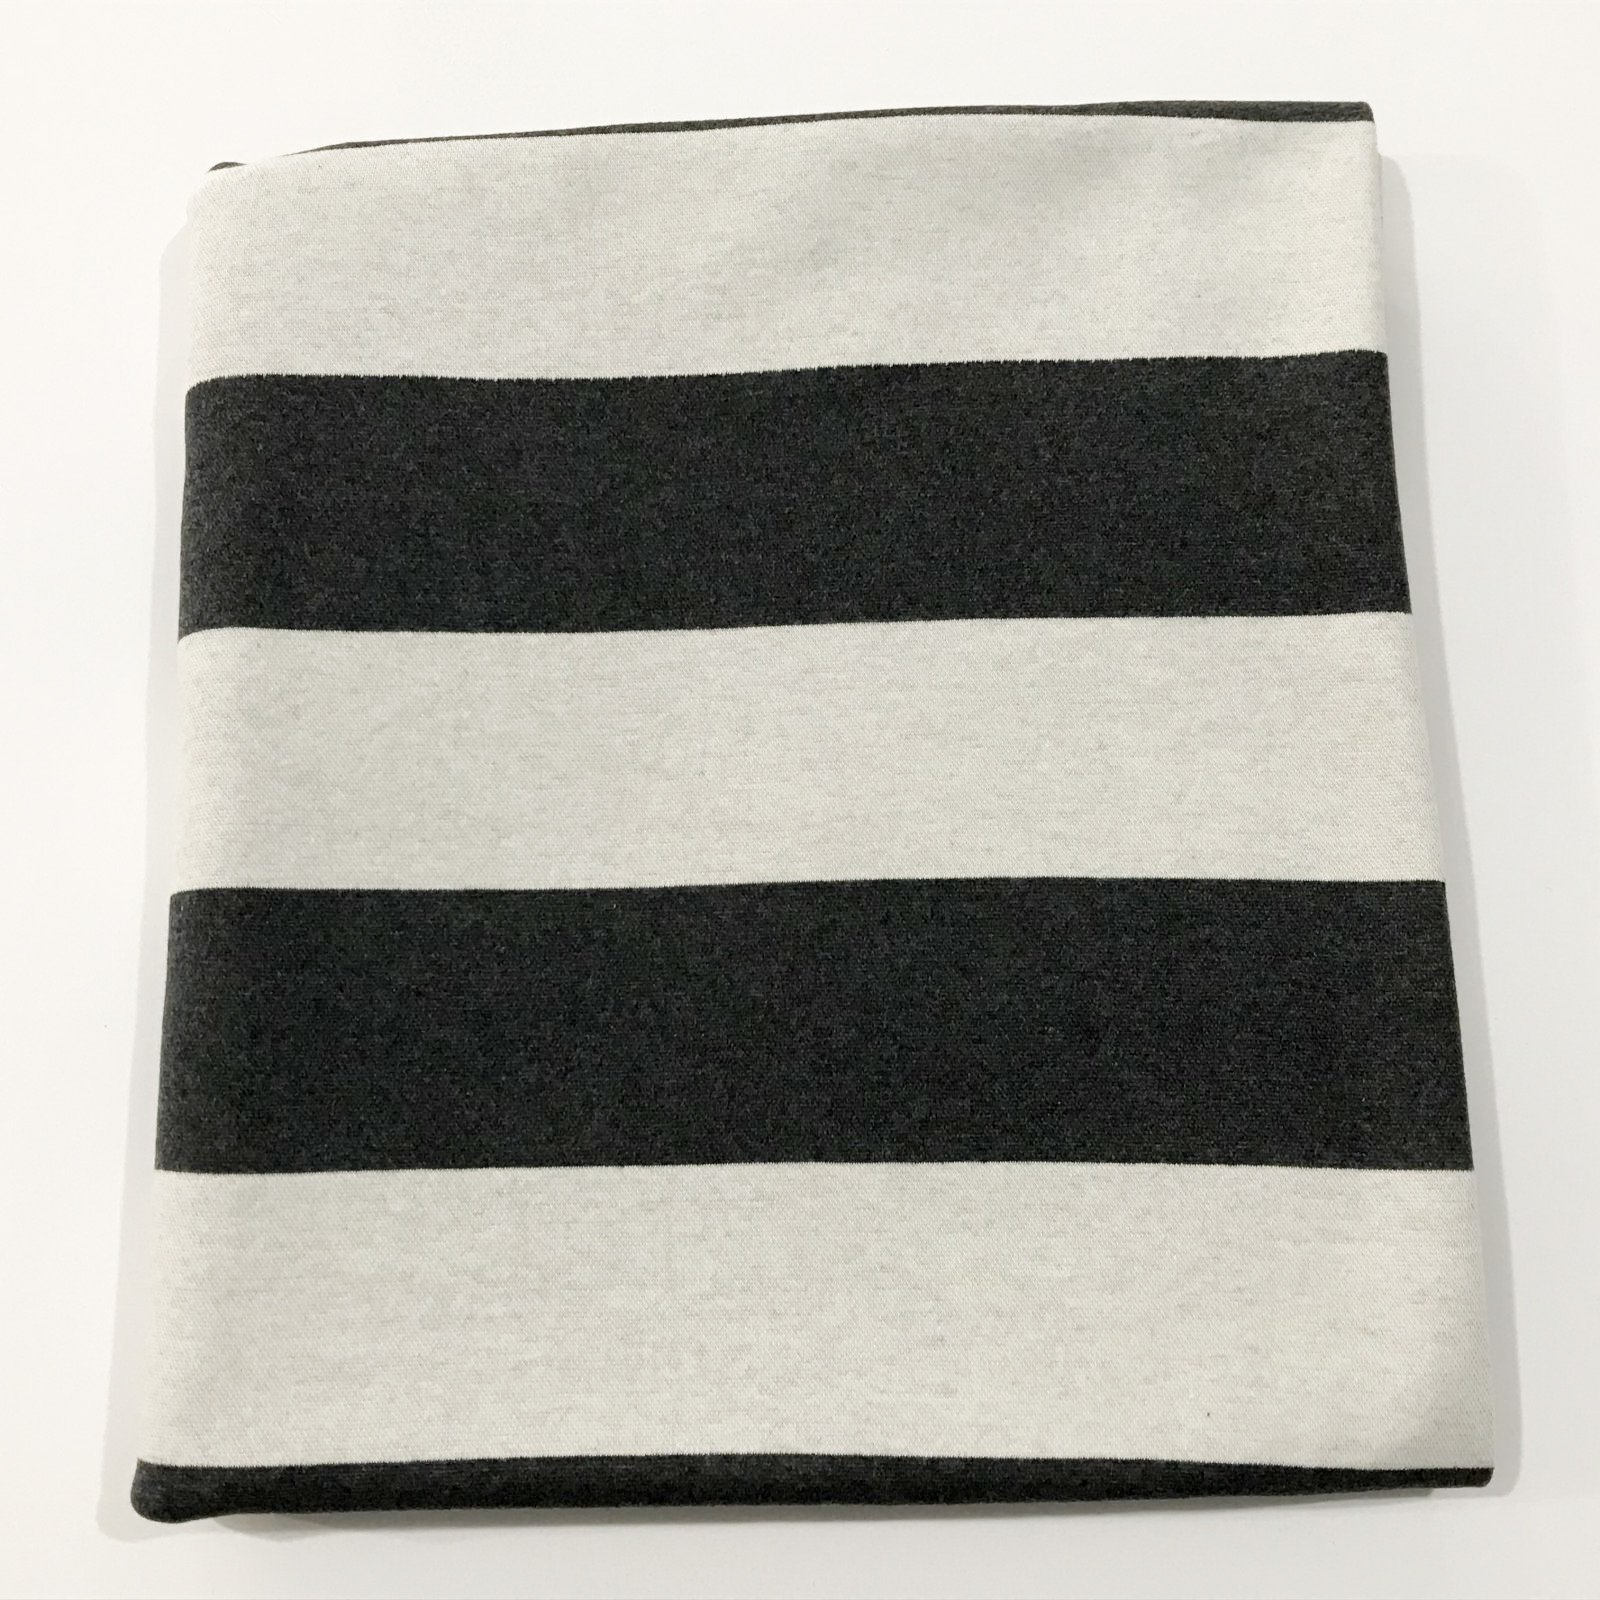 Double Faced Sweater Knit - Charcoal & Ivory - 2 1/2 yards